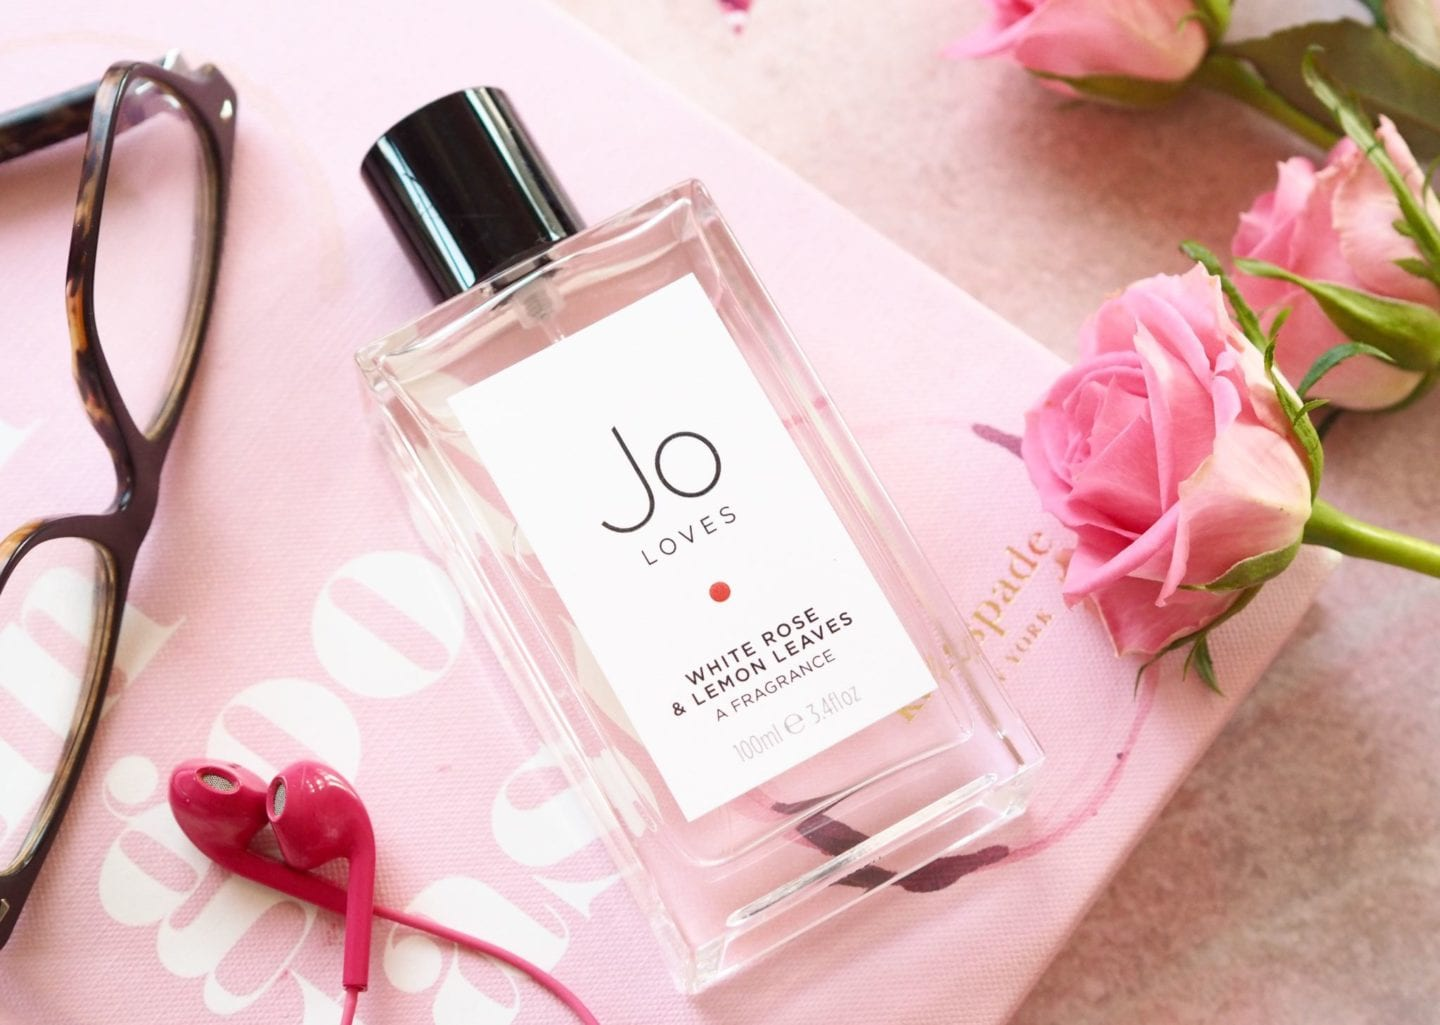 Jo Loves 'White Rose & Lemon Leaves' Perfume